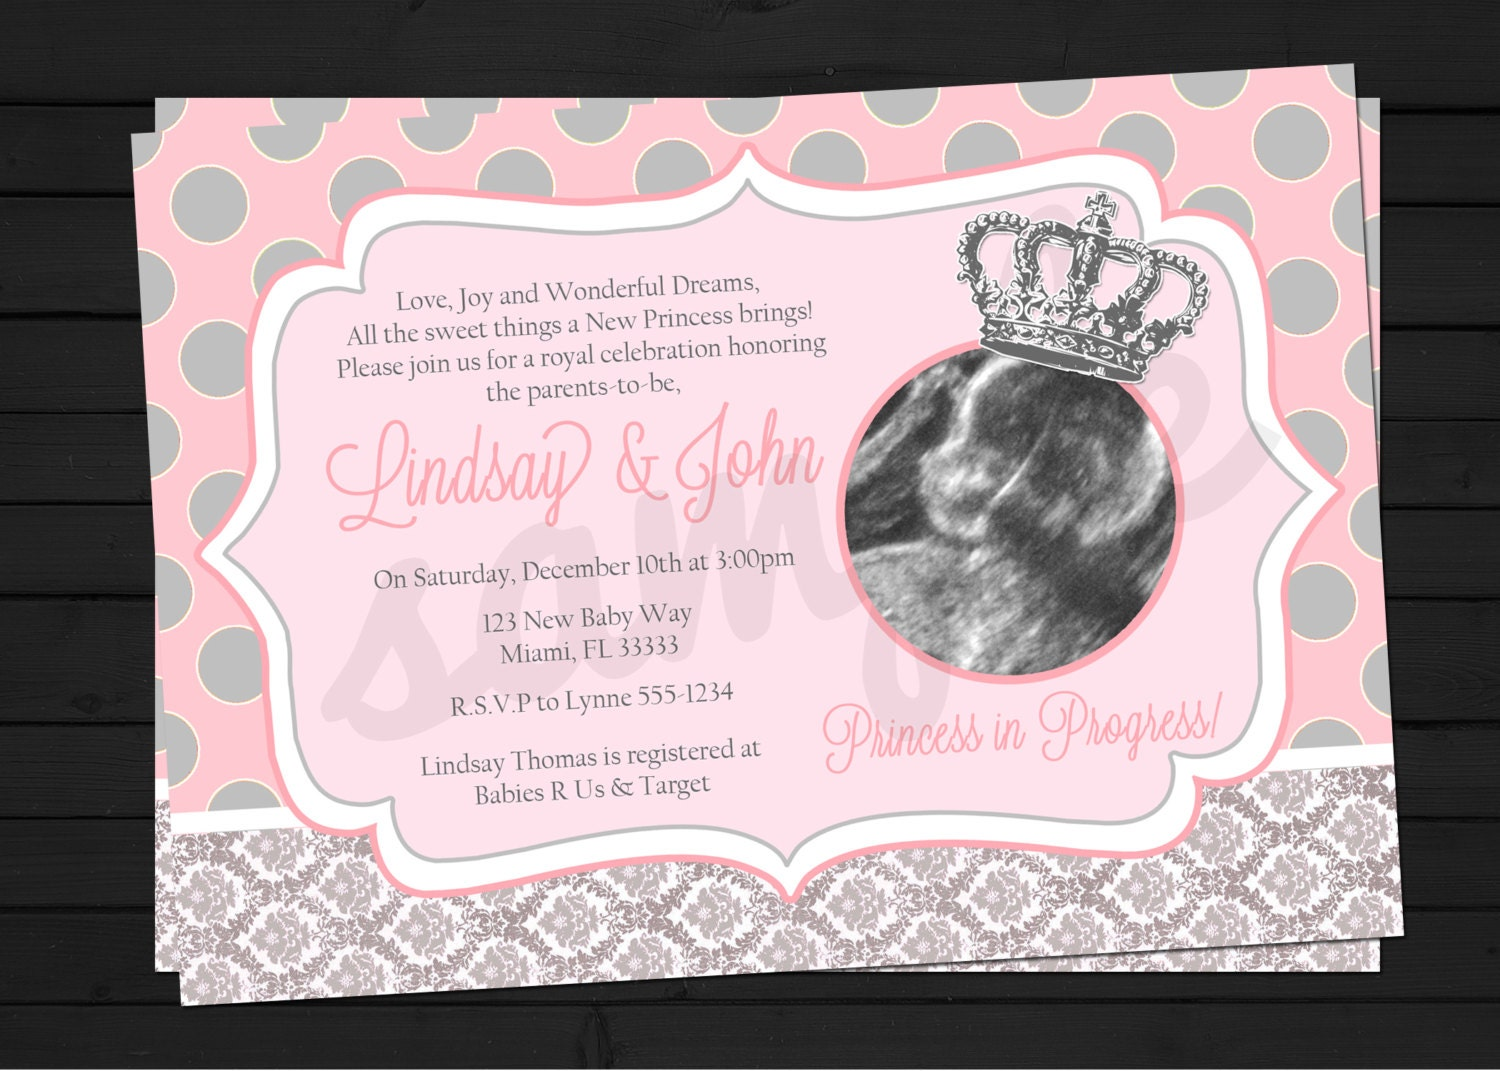 Little Princess in Progress Baby Shower Invitation Digital